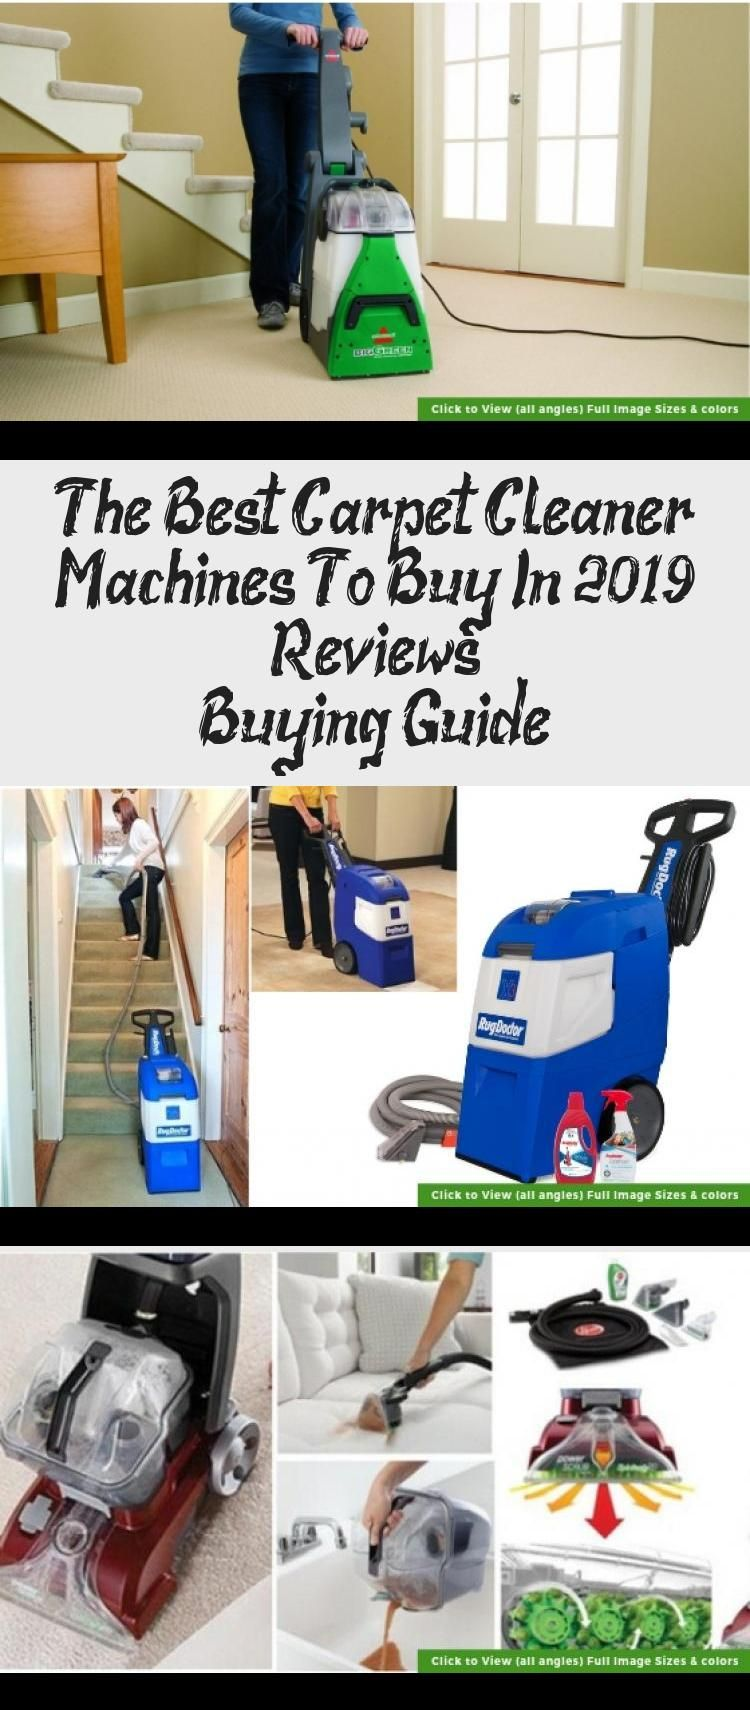 Top Rated Carpet Cleaners To Buy Carpetcleanerdoterra Carpetcleanerbakingsoda Carpetcleanerdiy In 2020 Top Rated Carpet Cleaners Diy Carpet Cleaner Carpet Cleaners